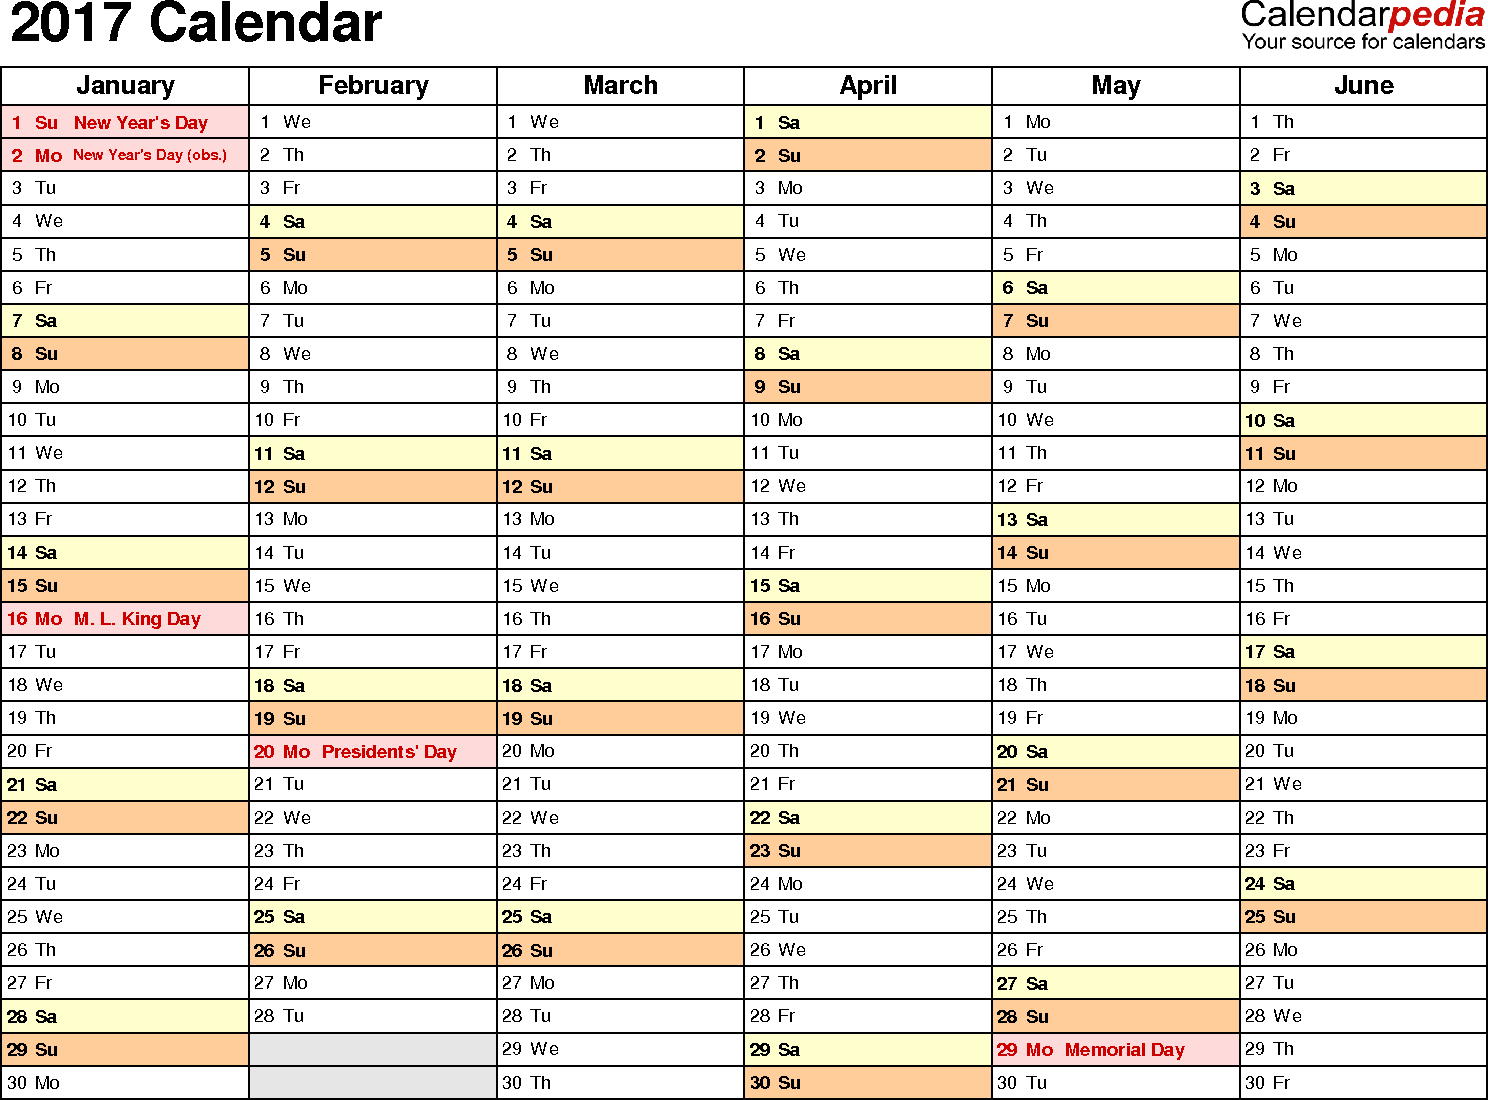 Ediblewildsus  Mesmerizing  Calendar  Download  Free Printable Excel Templates Xls With Handsome Template   Calendar For Excel Months Horizontally  Pages Landscape Orientation With Nice Creating Charts In Excel  Also Quickbooks Import Excel In Addition Excel Conditional Formatting Based On Other Cells And Table Of Contents Excel As Well As Excel Alternate Row Shading Additionally How To Add Times In Excel From Calendarpediacom With Ediblewildsus  Handsome  Calendar  Download  Free Printable Excel Templates Xls With Nice Template   Calendar For Excel Months Horizontally  Pages Landscape Orientation And Mesmerizing Creating Charts In Excel  Also Quickbooks Import Excel In Addition Excel Conditional Formatting Based On Other Cells From Calendarpediacom